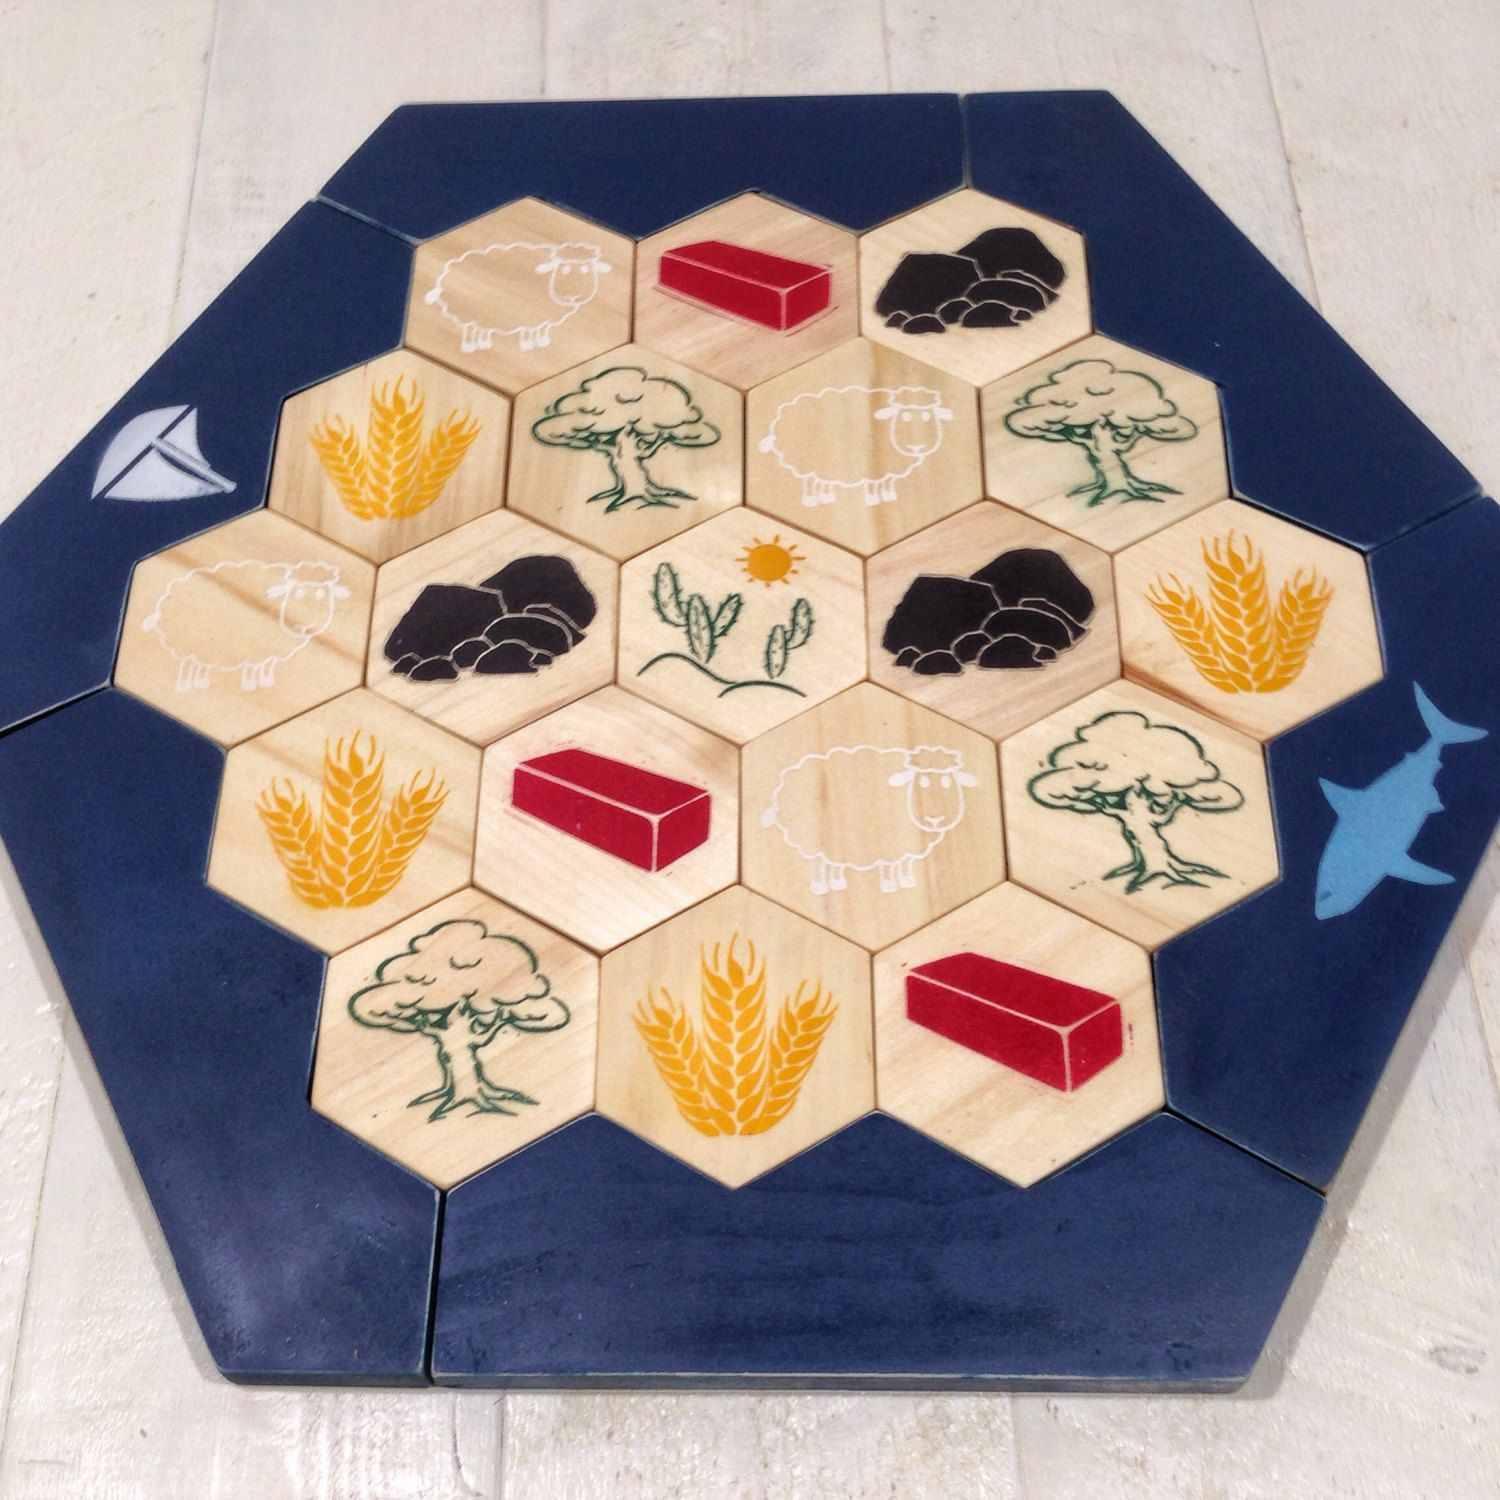 Catan Settlers Board Settlers Of Catan Painted By Sodacreek Etsy Mall Etsy Finds Etsy